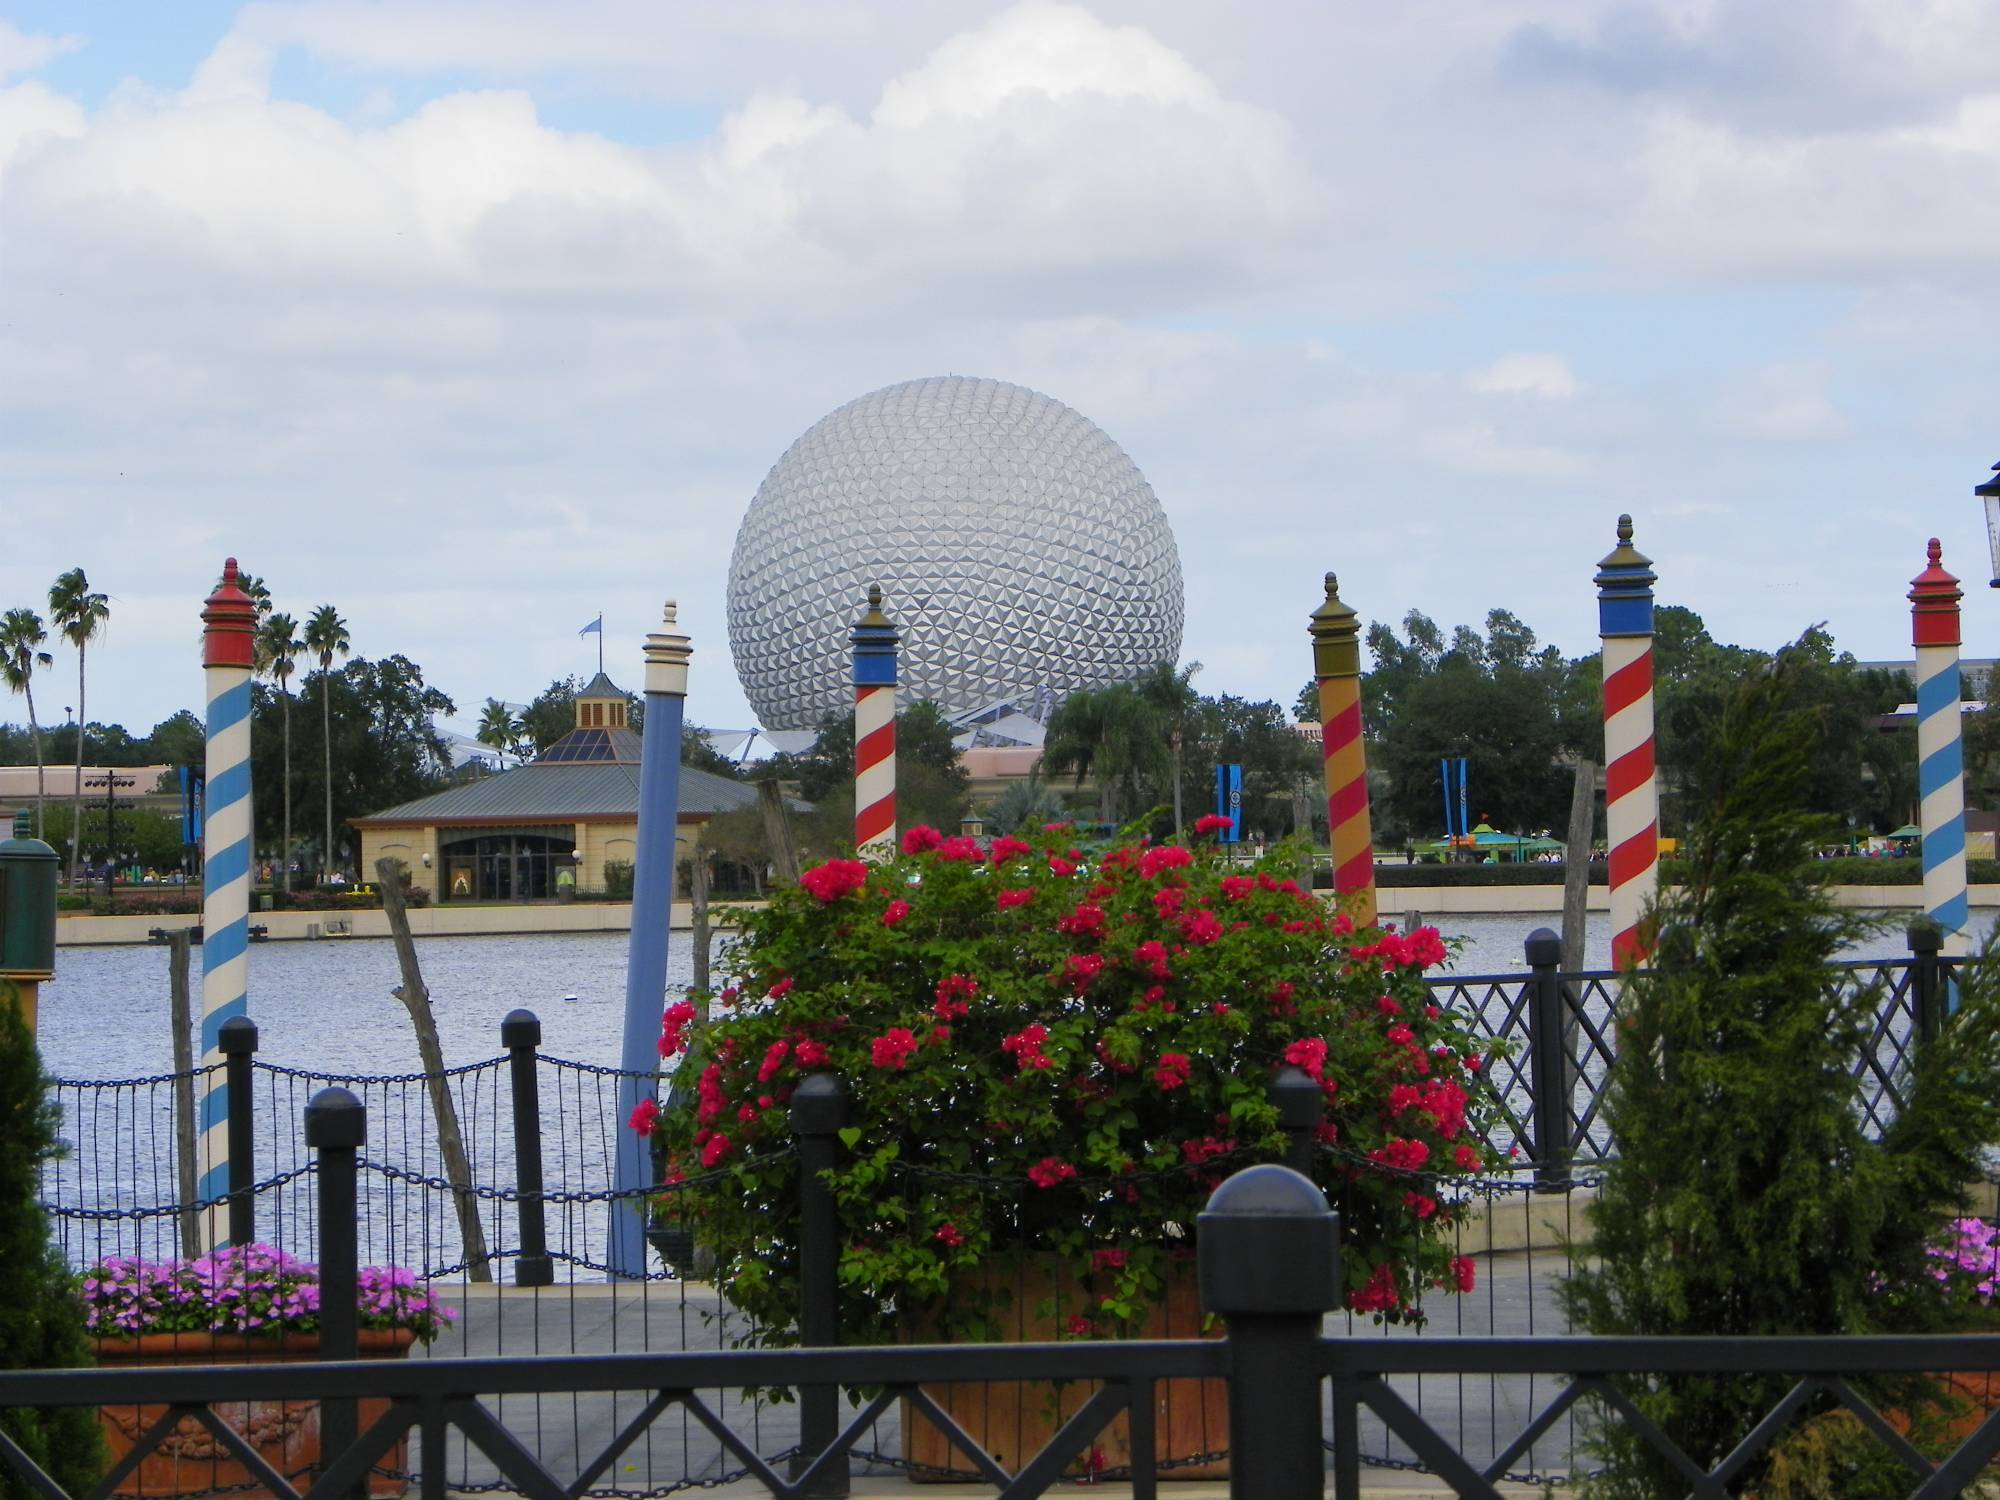 Spaceship Earth From Italy